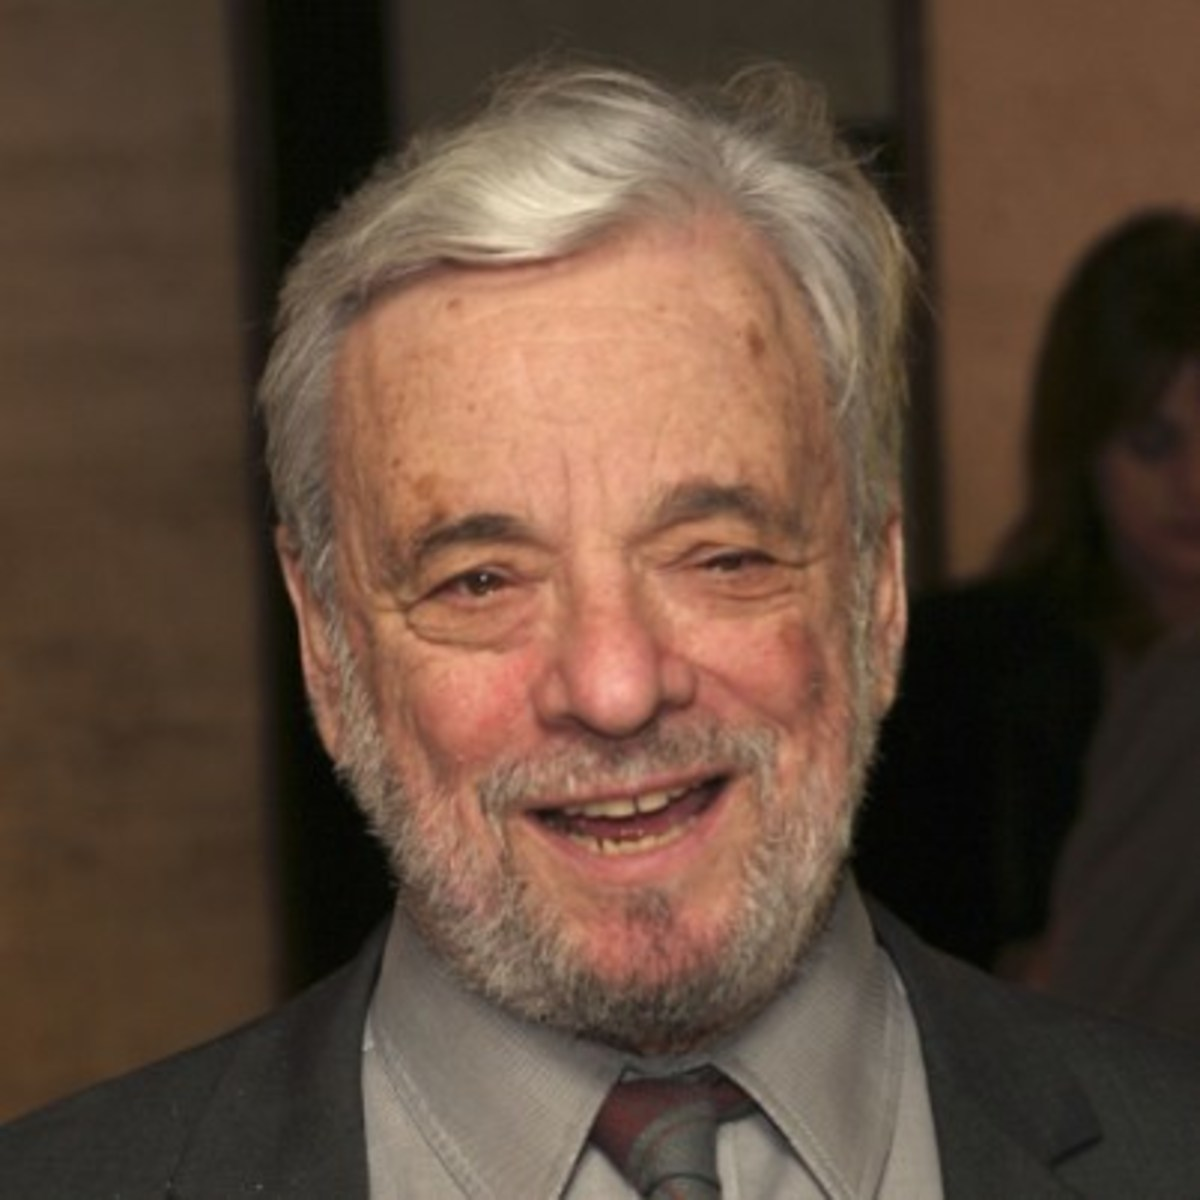 the life and work of stephen sondheim When stephen sondheim was in his 30s, he would get approached,  only  sondheim fanatics might go for, an exposition of his work from 1954.